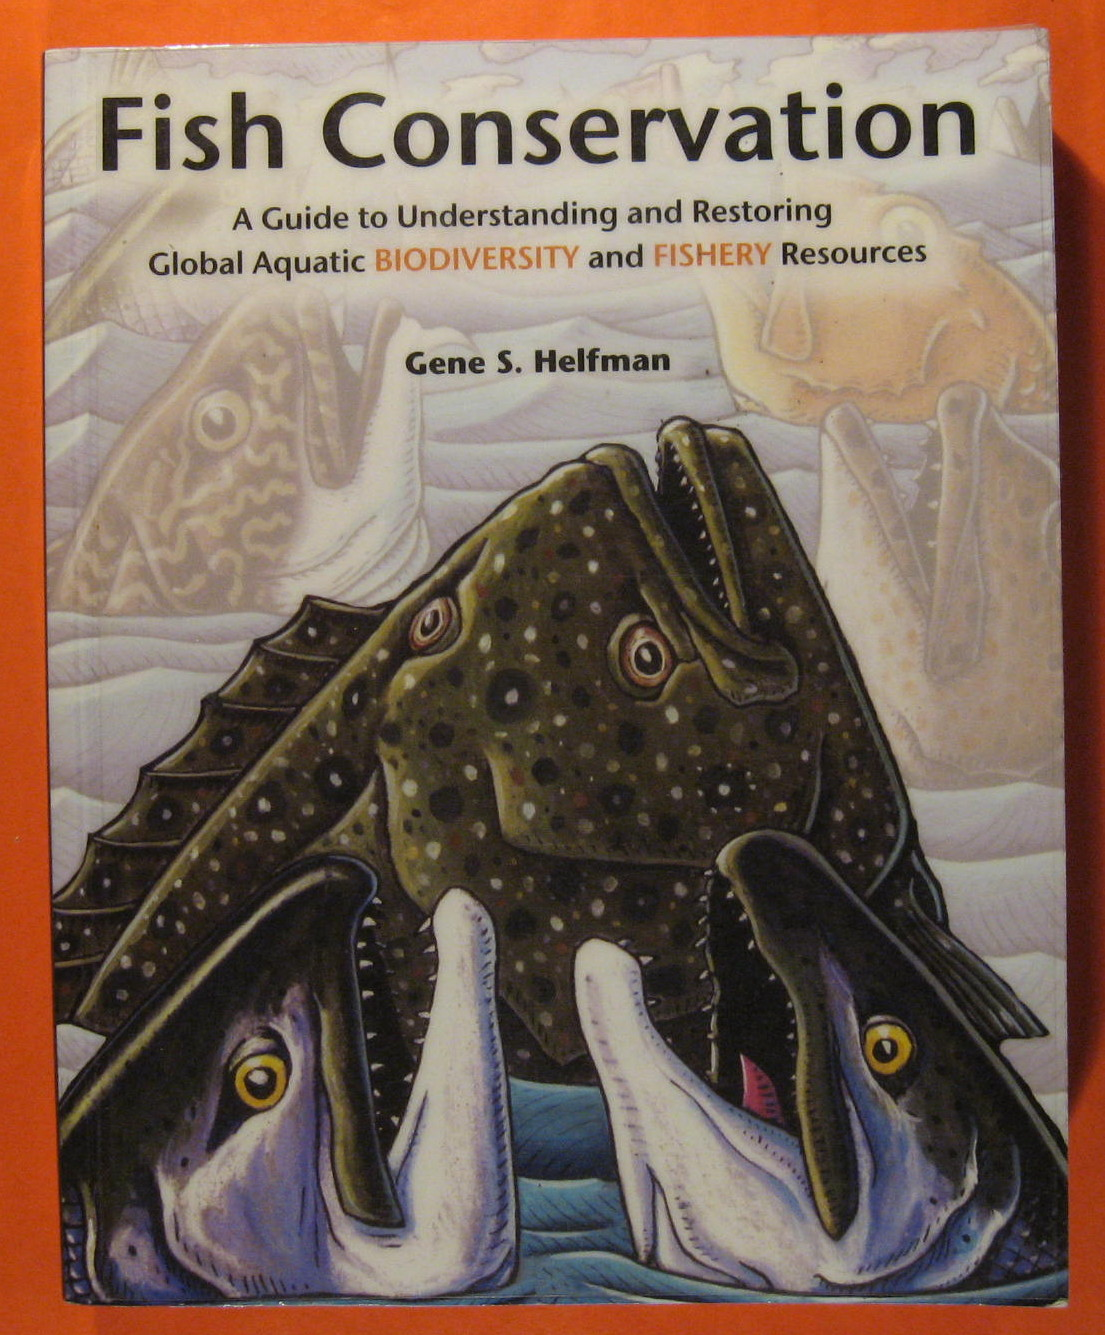 Image for Fish Conservation: A Guide to Understanding and Restoring Global Aquatic Biodiversity and Fishery Resources